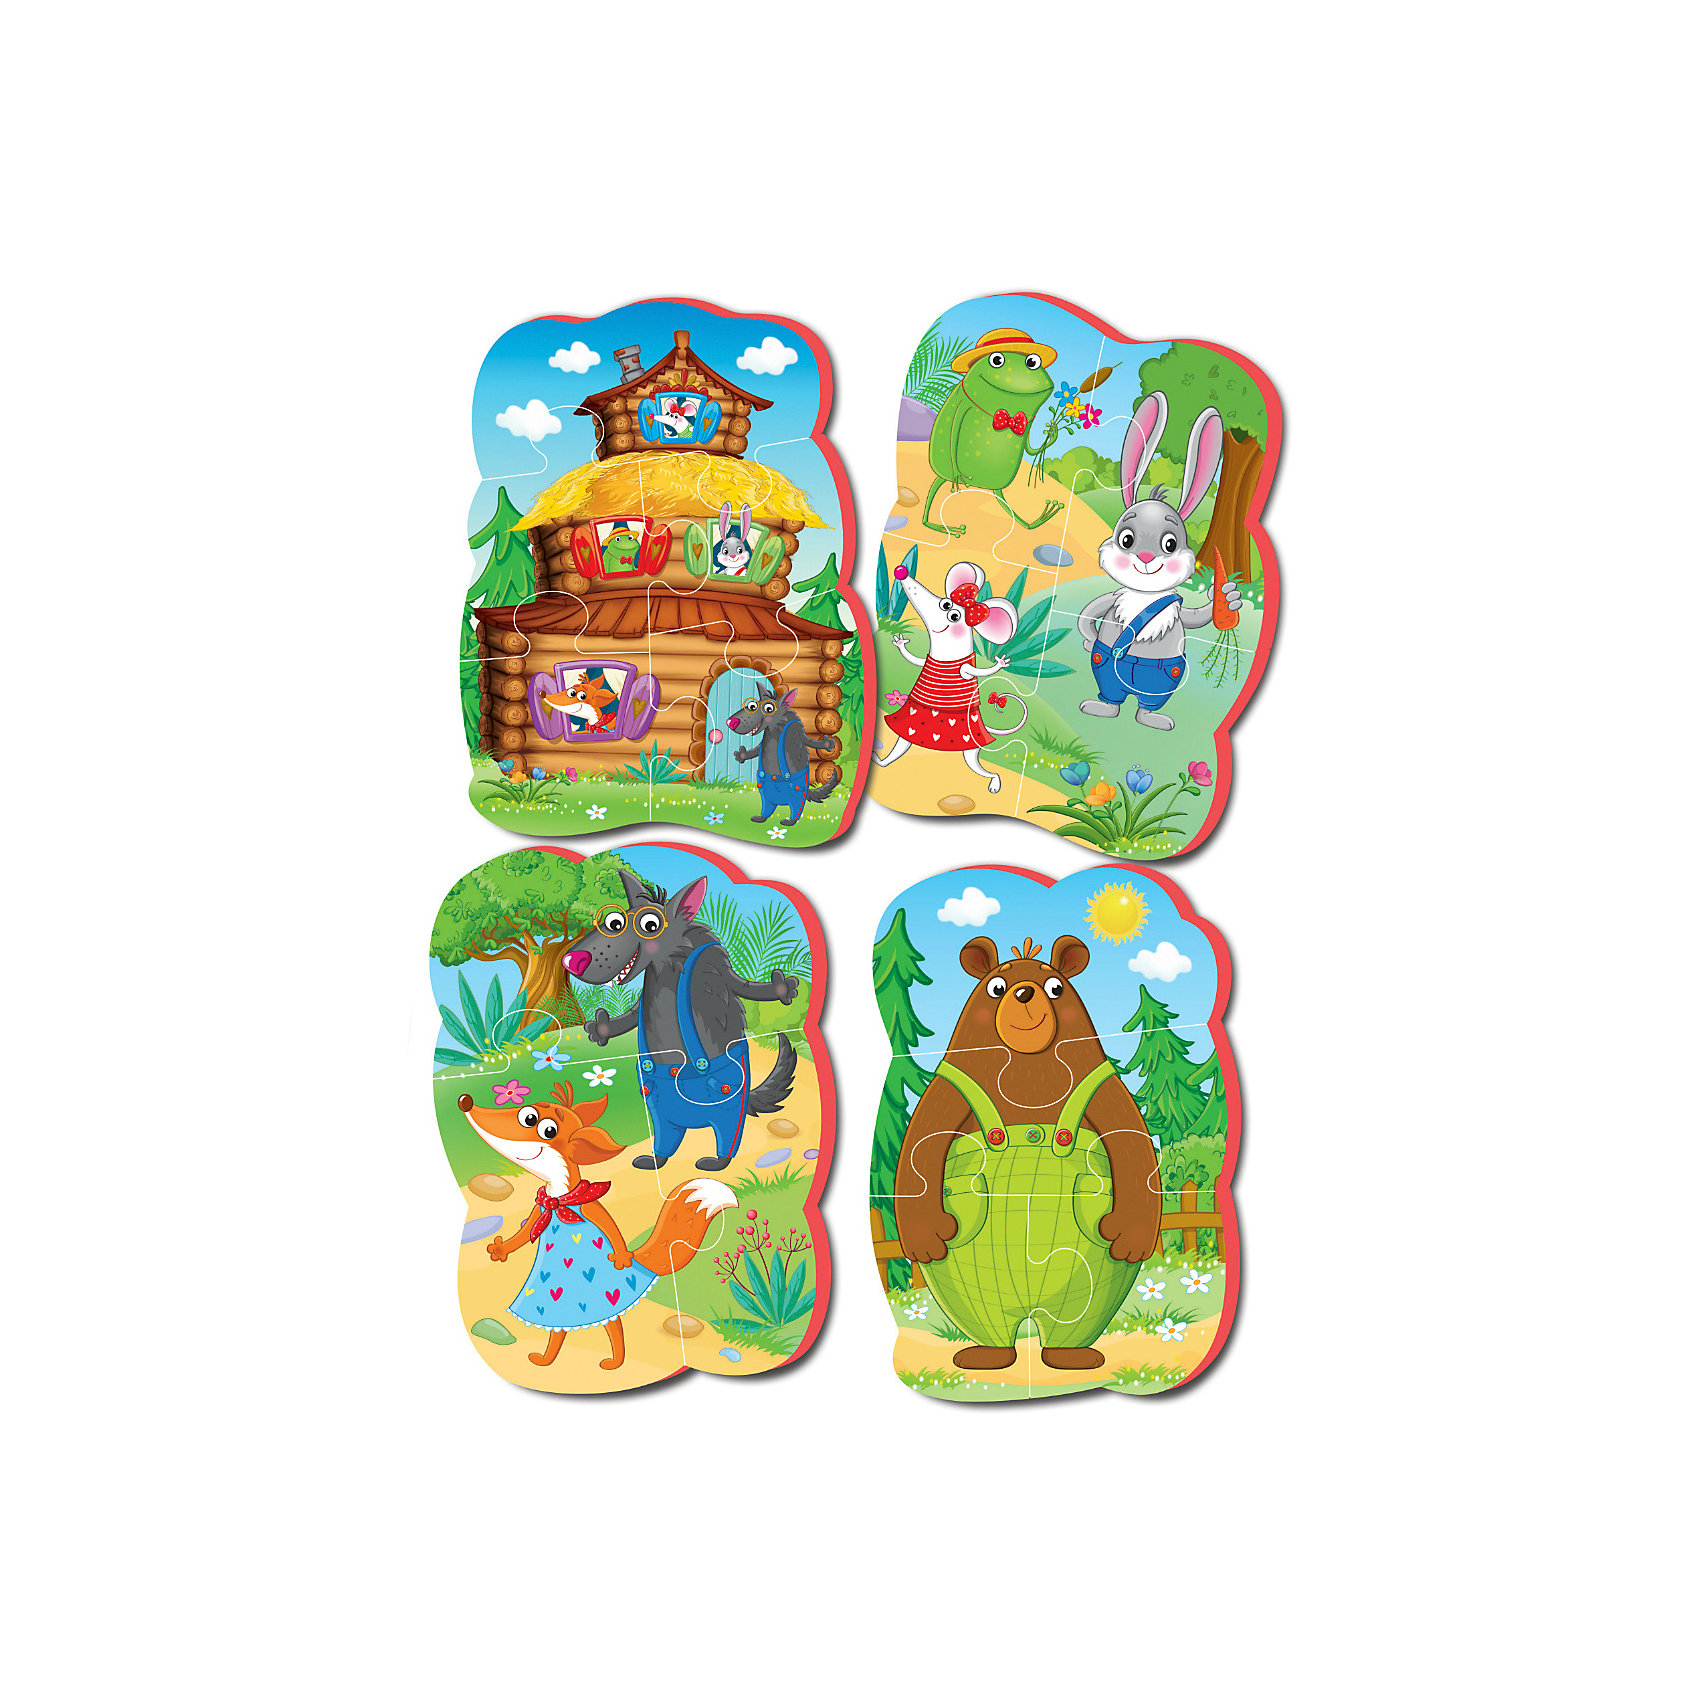 Vladi Toys Мягкие пазлы Теремок, Vladi Toys пазлы vladi toys пазлы мягкие baby puzzle сказки репка